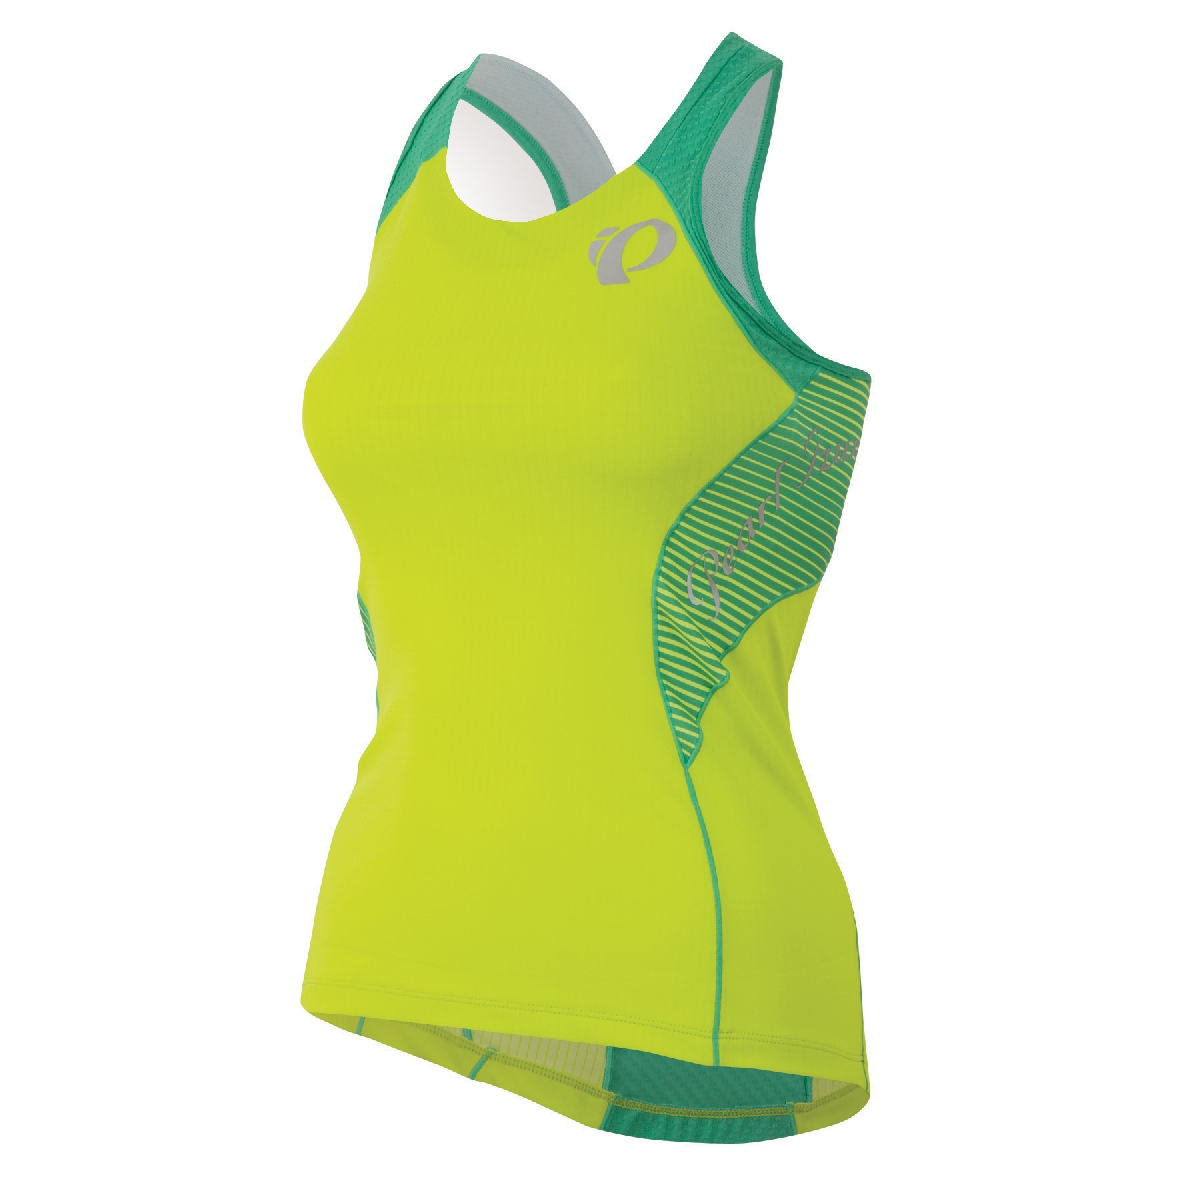 Pearl Izumi Elite In R Cool Support Triathlon Singlet Women's Size S SulphurSprings U.S.A. & Canada